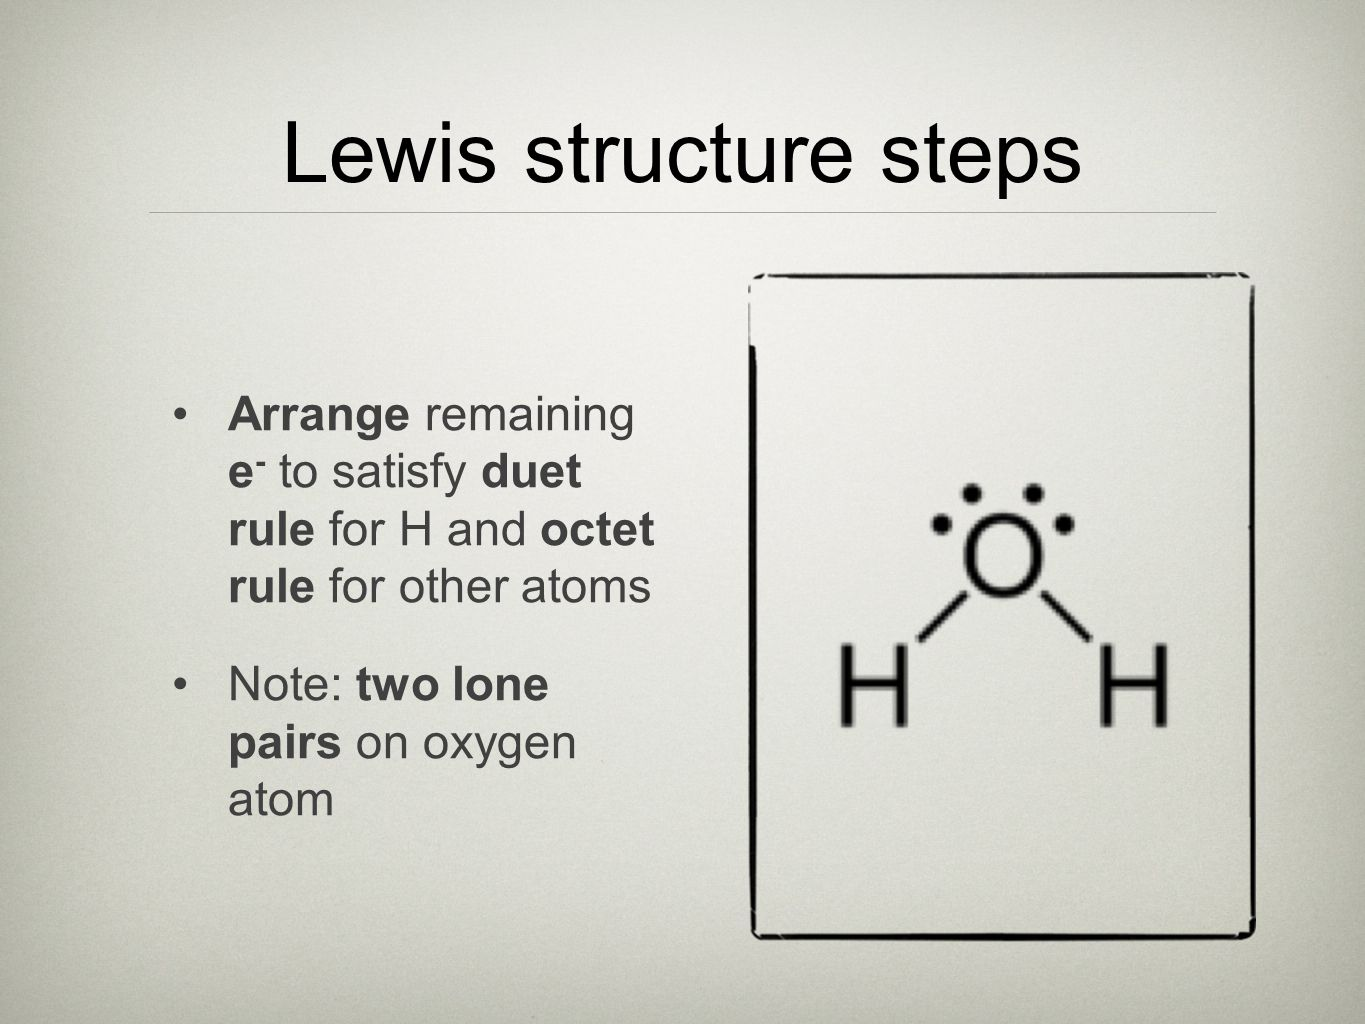 Lewis structure steps Arrange remaining e- to satisfy duet rule for H and octet rule for other atoms.